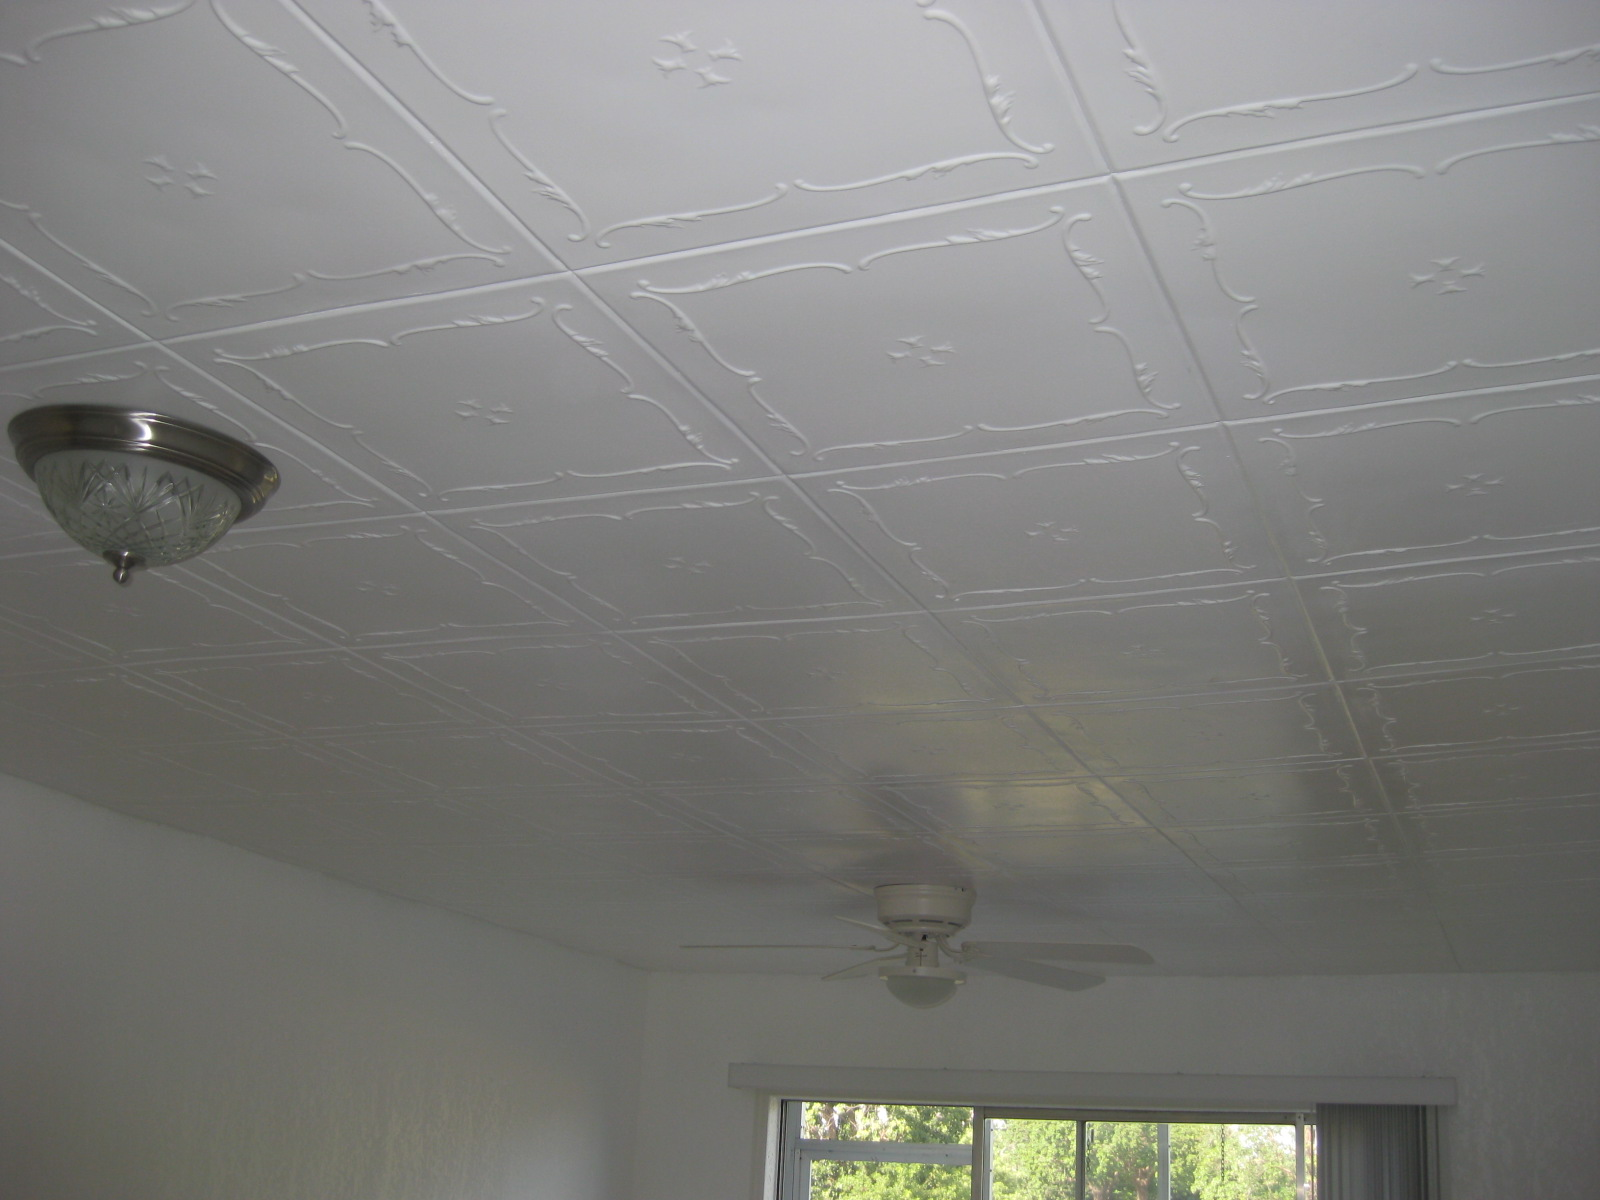 Styrofoam ceiling tiles installed install r 5 dailygadgetfo Gallery